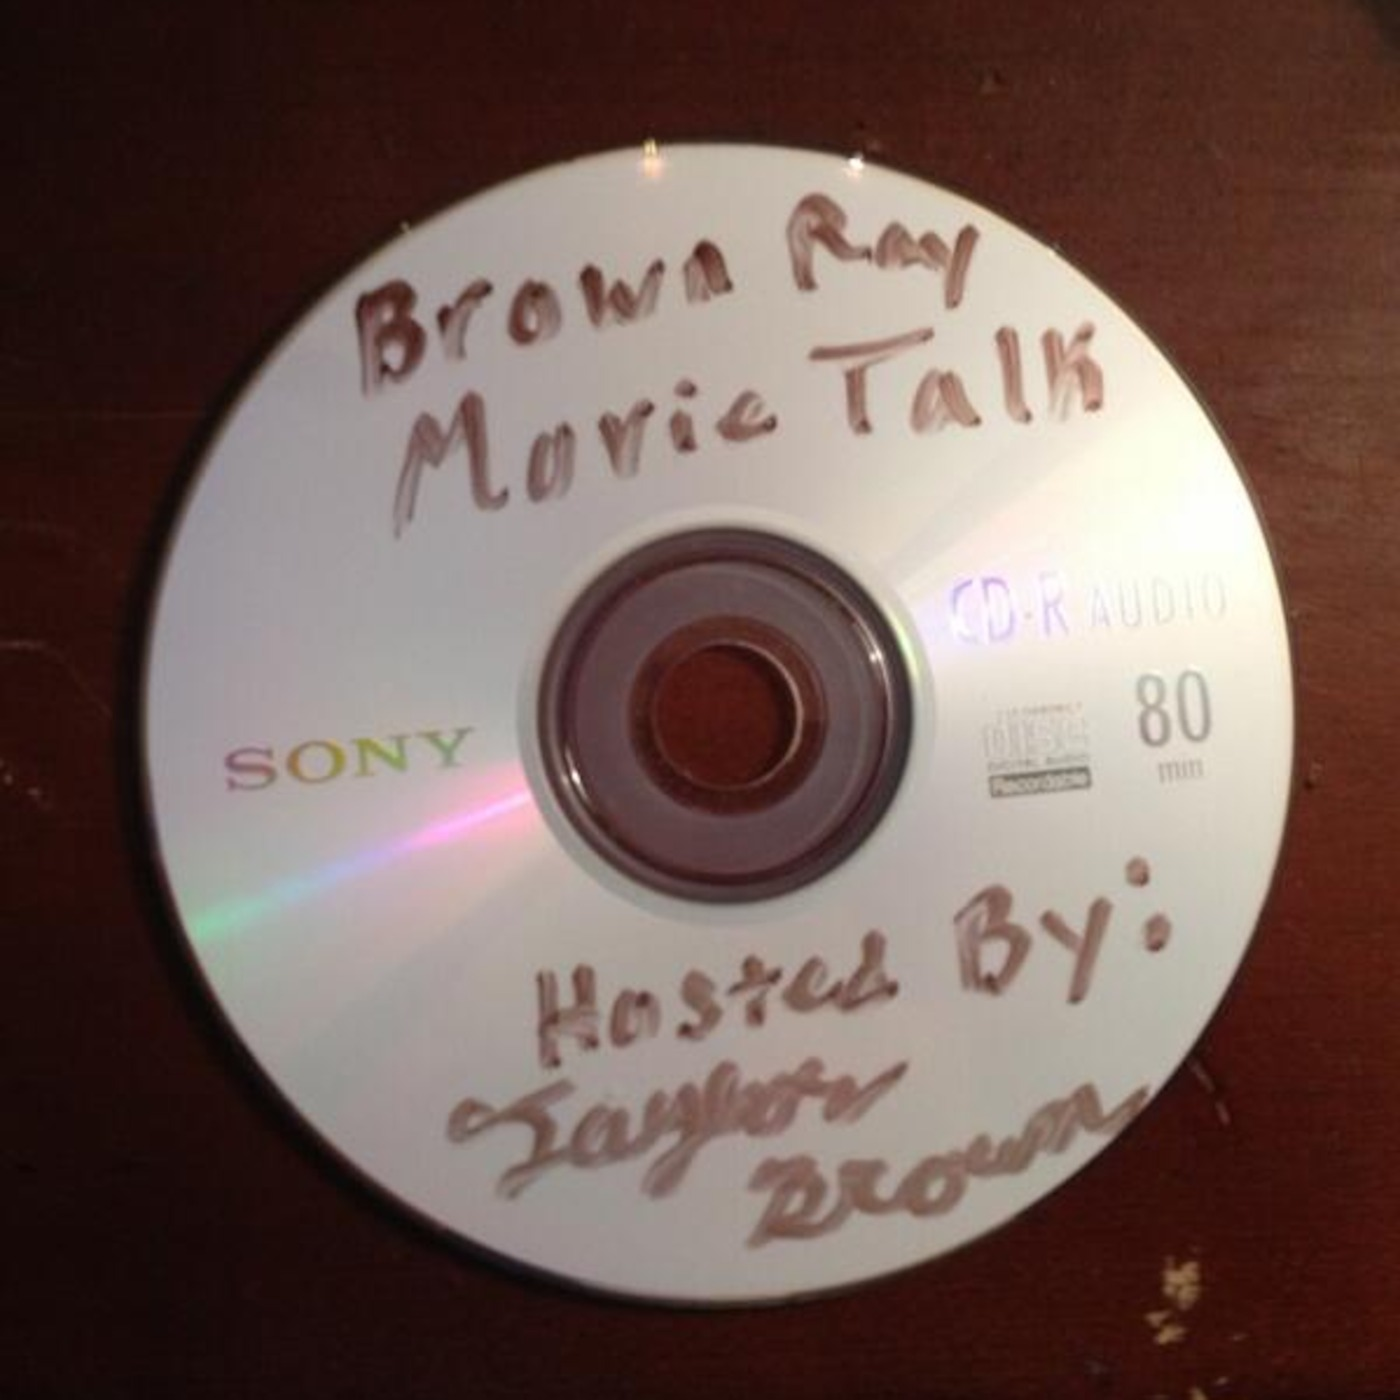 Brown Ray Movie Talk